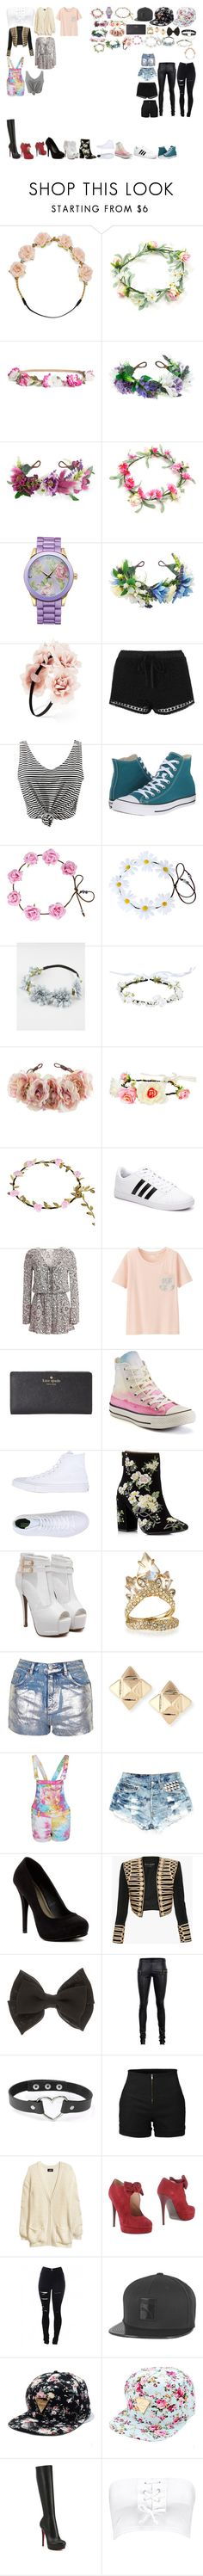 """""""Packing for oppas"""" by royalsinthedark ❤ liked on Polyvore featuring Carole, H&M, Rock 'N Rose, Picard & Cie, Forever 21, Topshop, WithChic, Converse, Full Tilt and adidas NEO"""